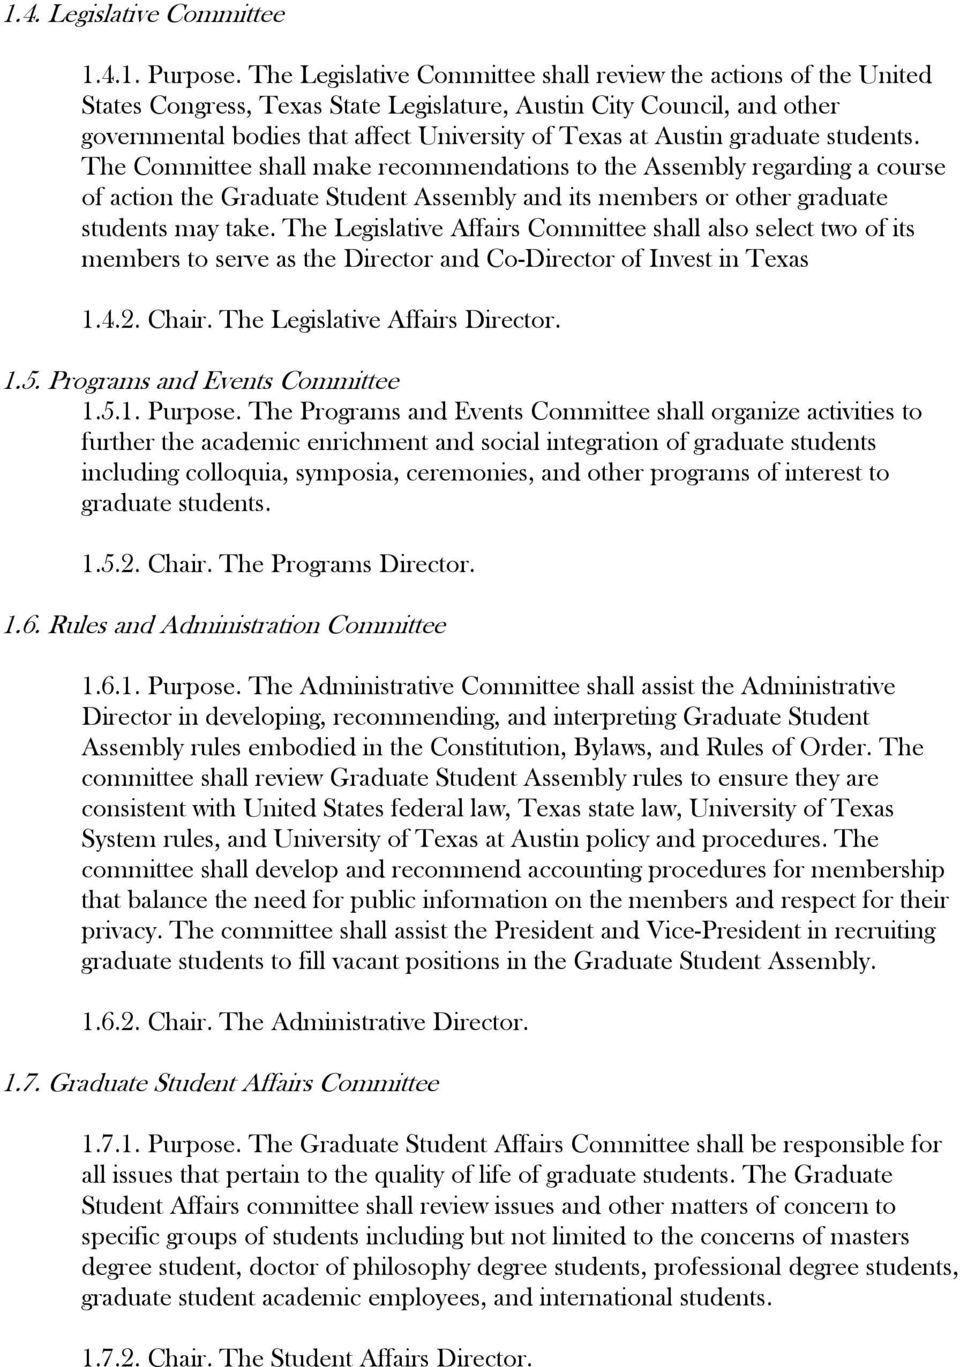 graduate students. The Committee shall make recommendations to the Assembly regarding a course of action the Graduate Student Assembly and its members or other graduate students may take.